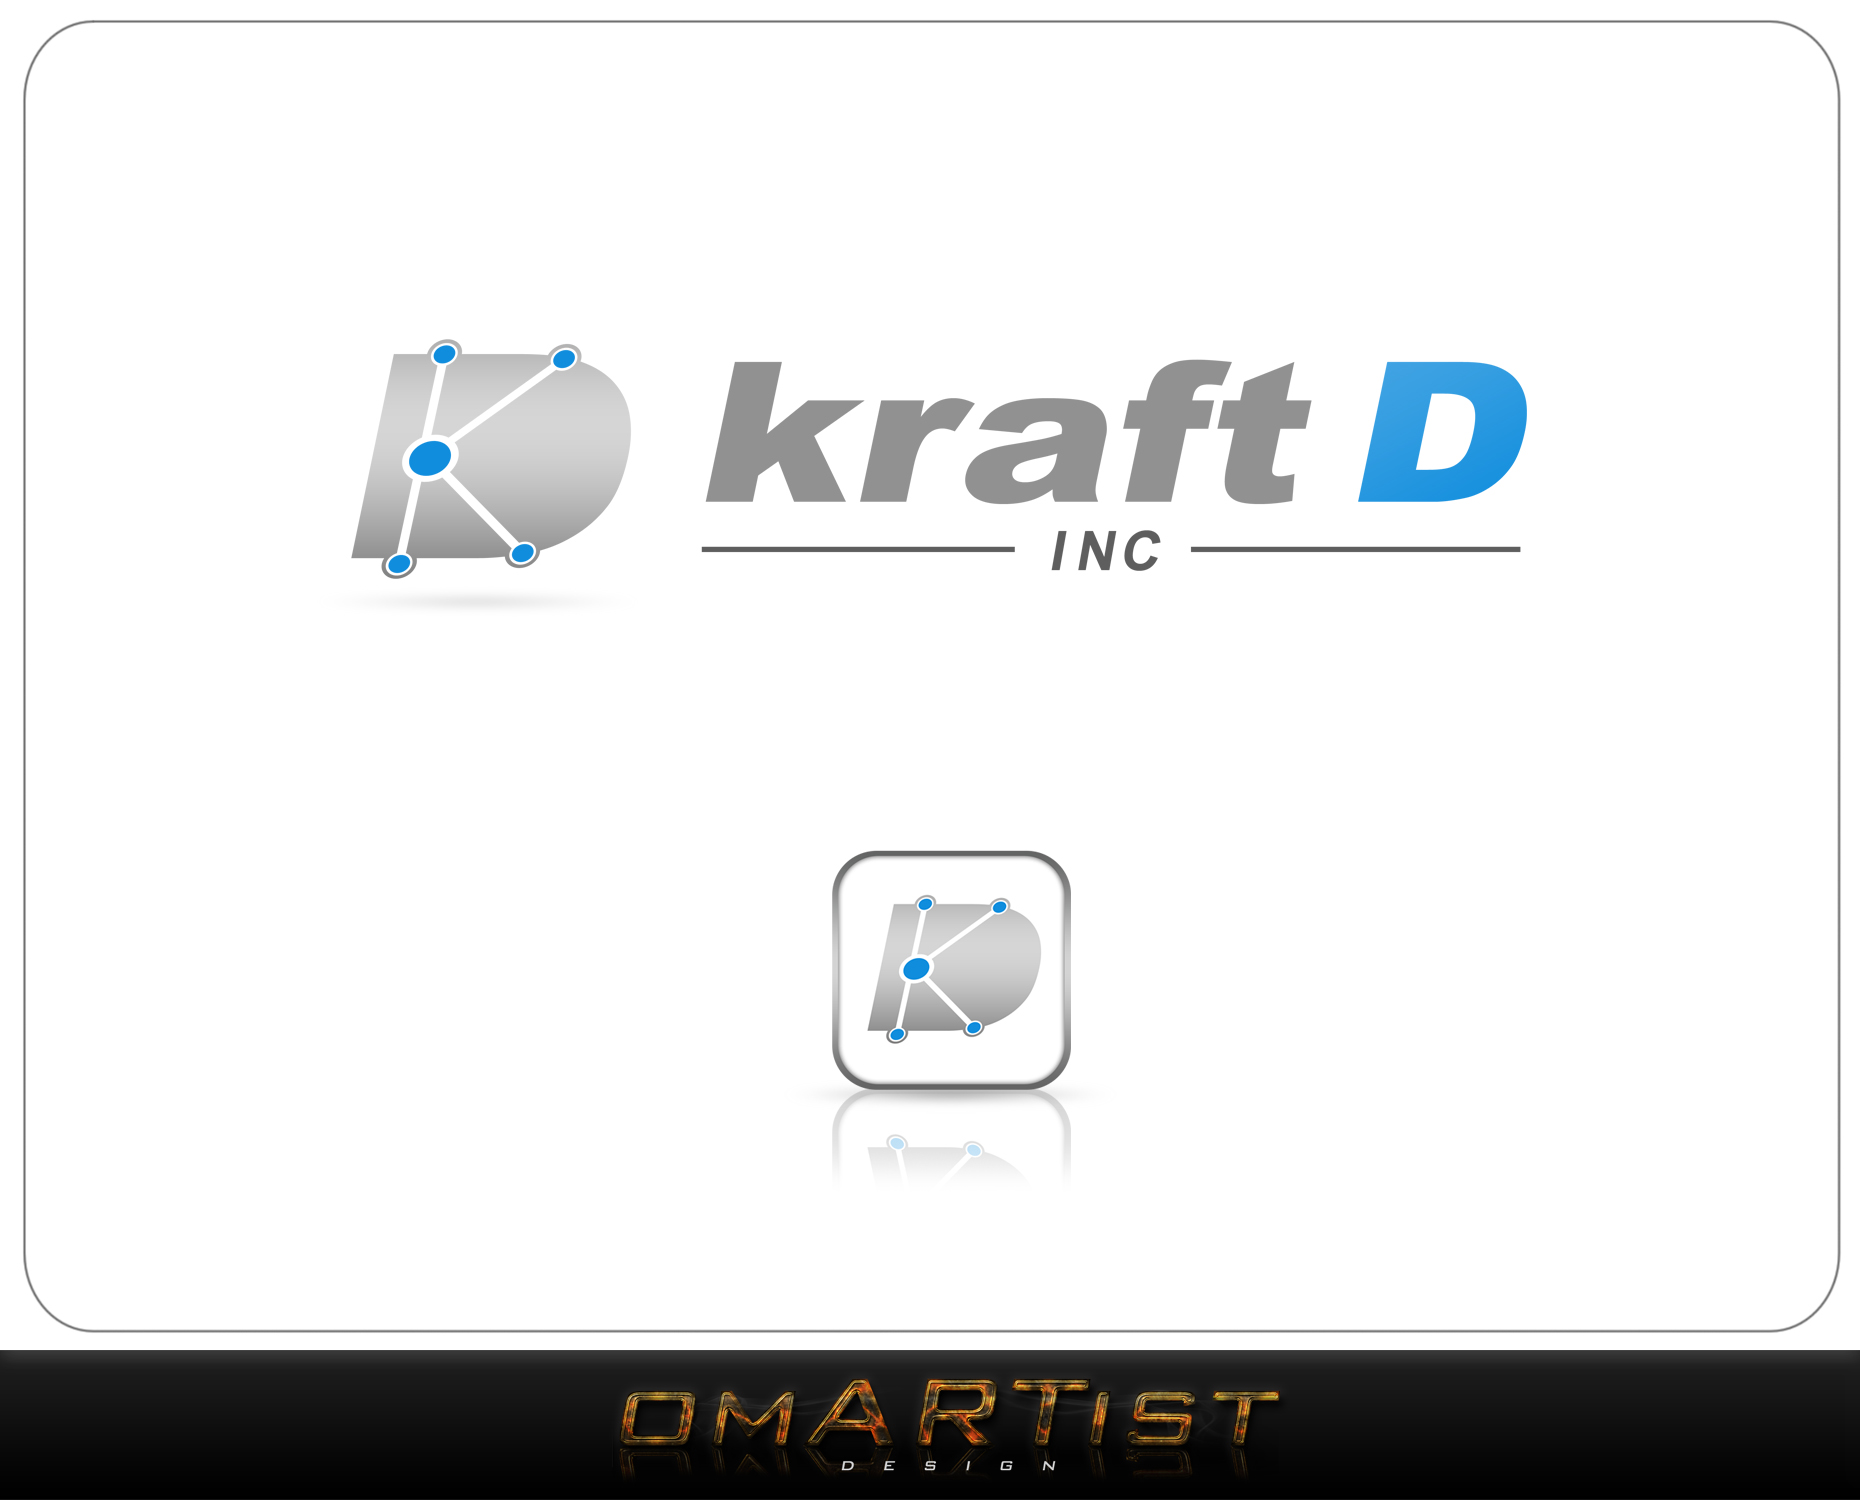 Logo Design by omARTist - Entry No. 502 in the Logo Design Contest Unique Logo Design Wanted for Kraft D Inc.